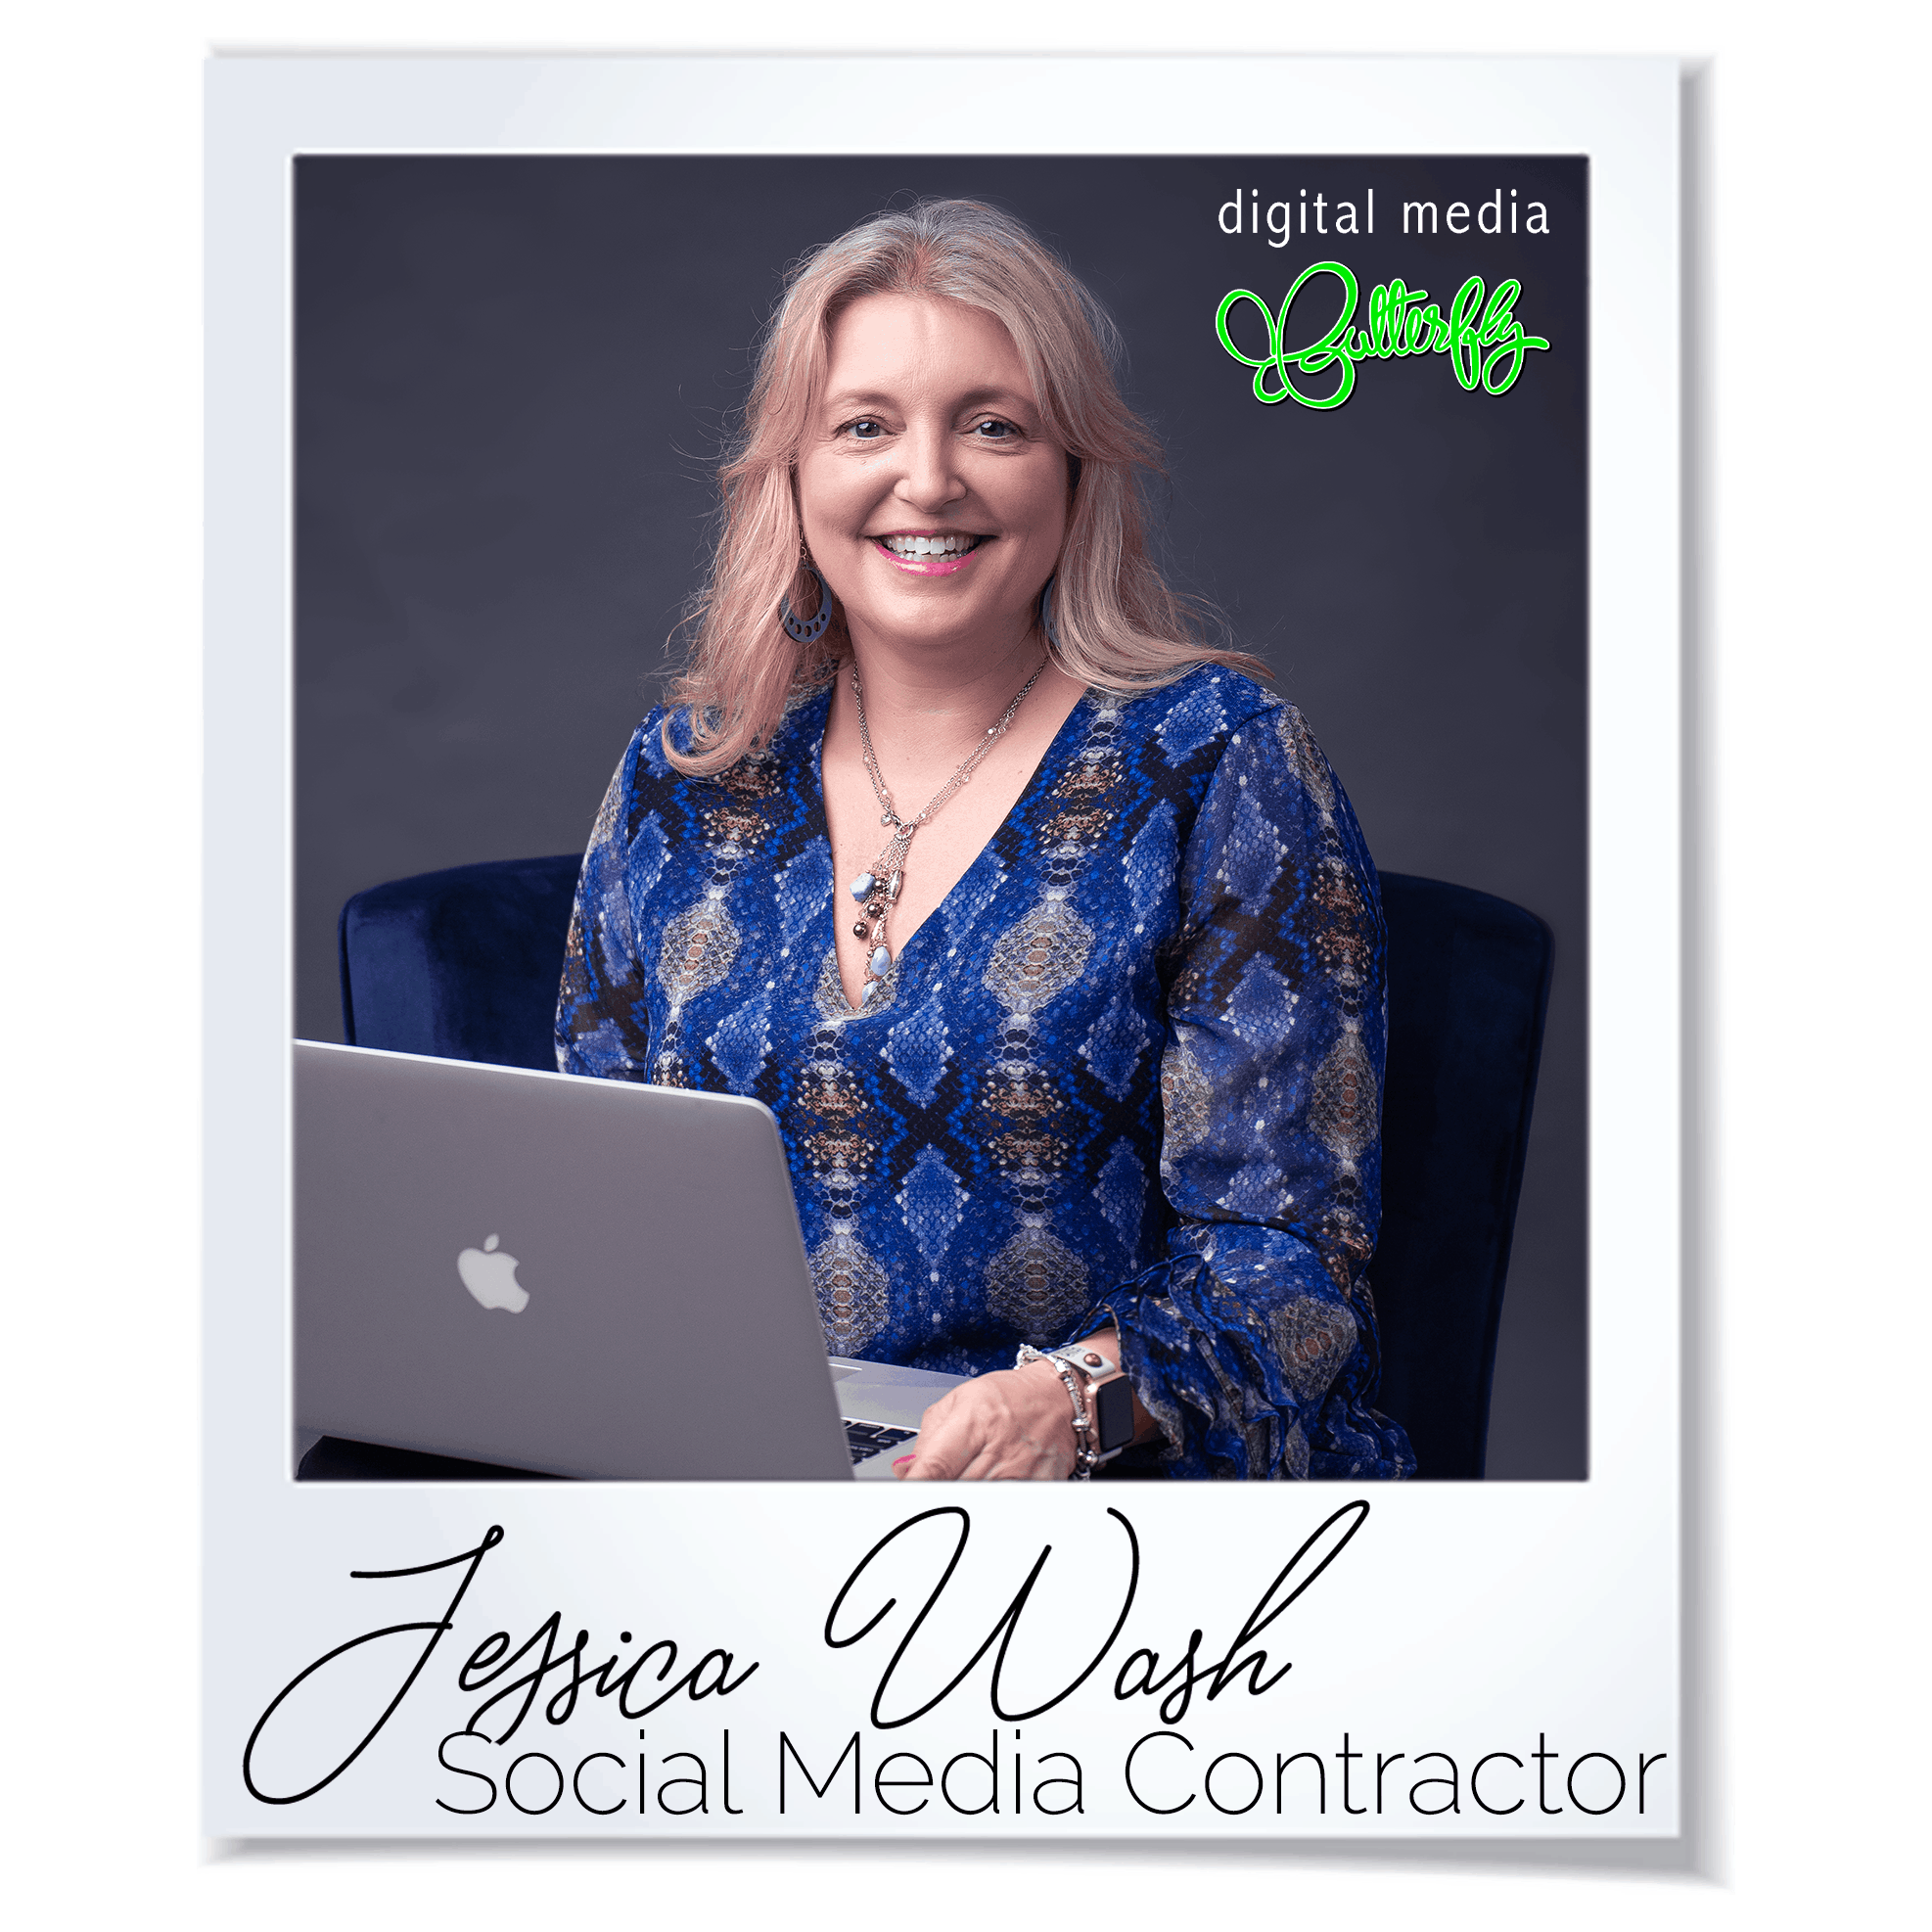 Jessica-Wash-Digital-Media-Butterfly-Marketing-Agency-Social-Media-Contractor